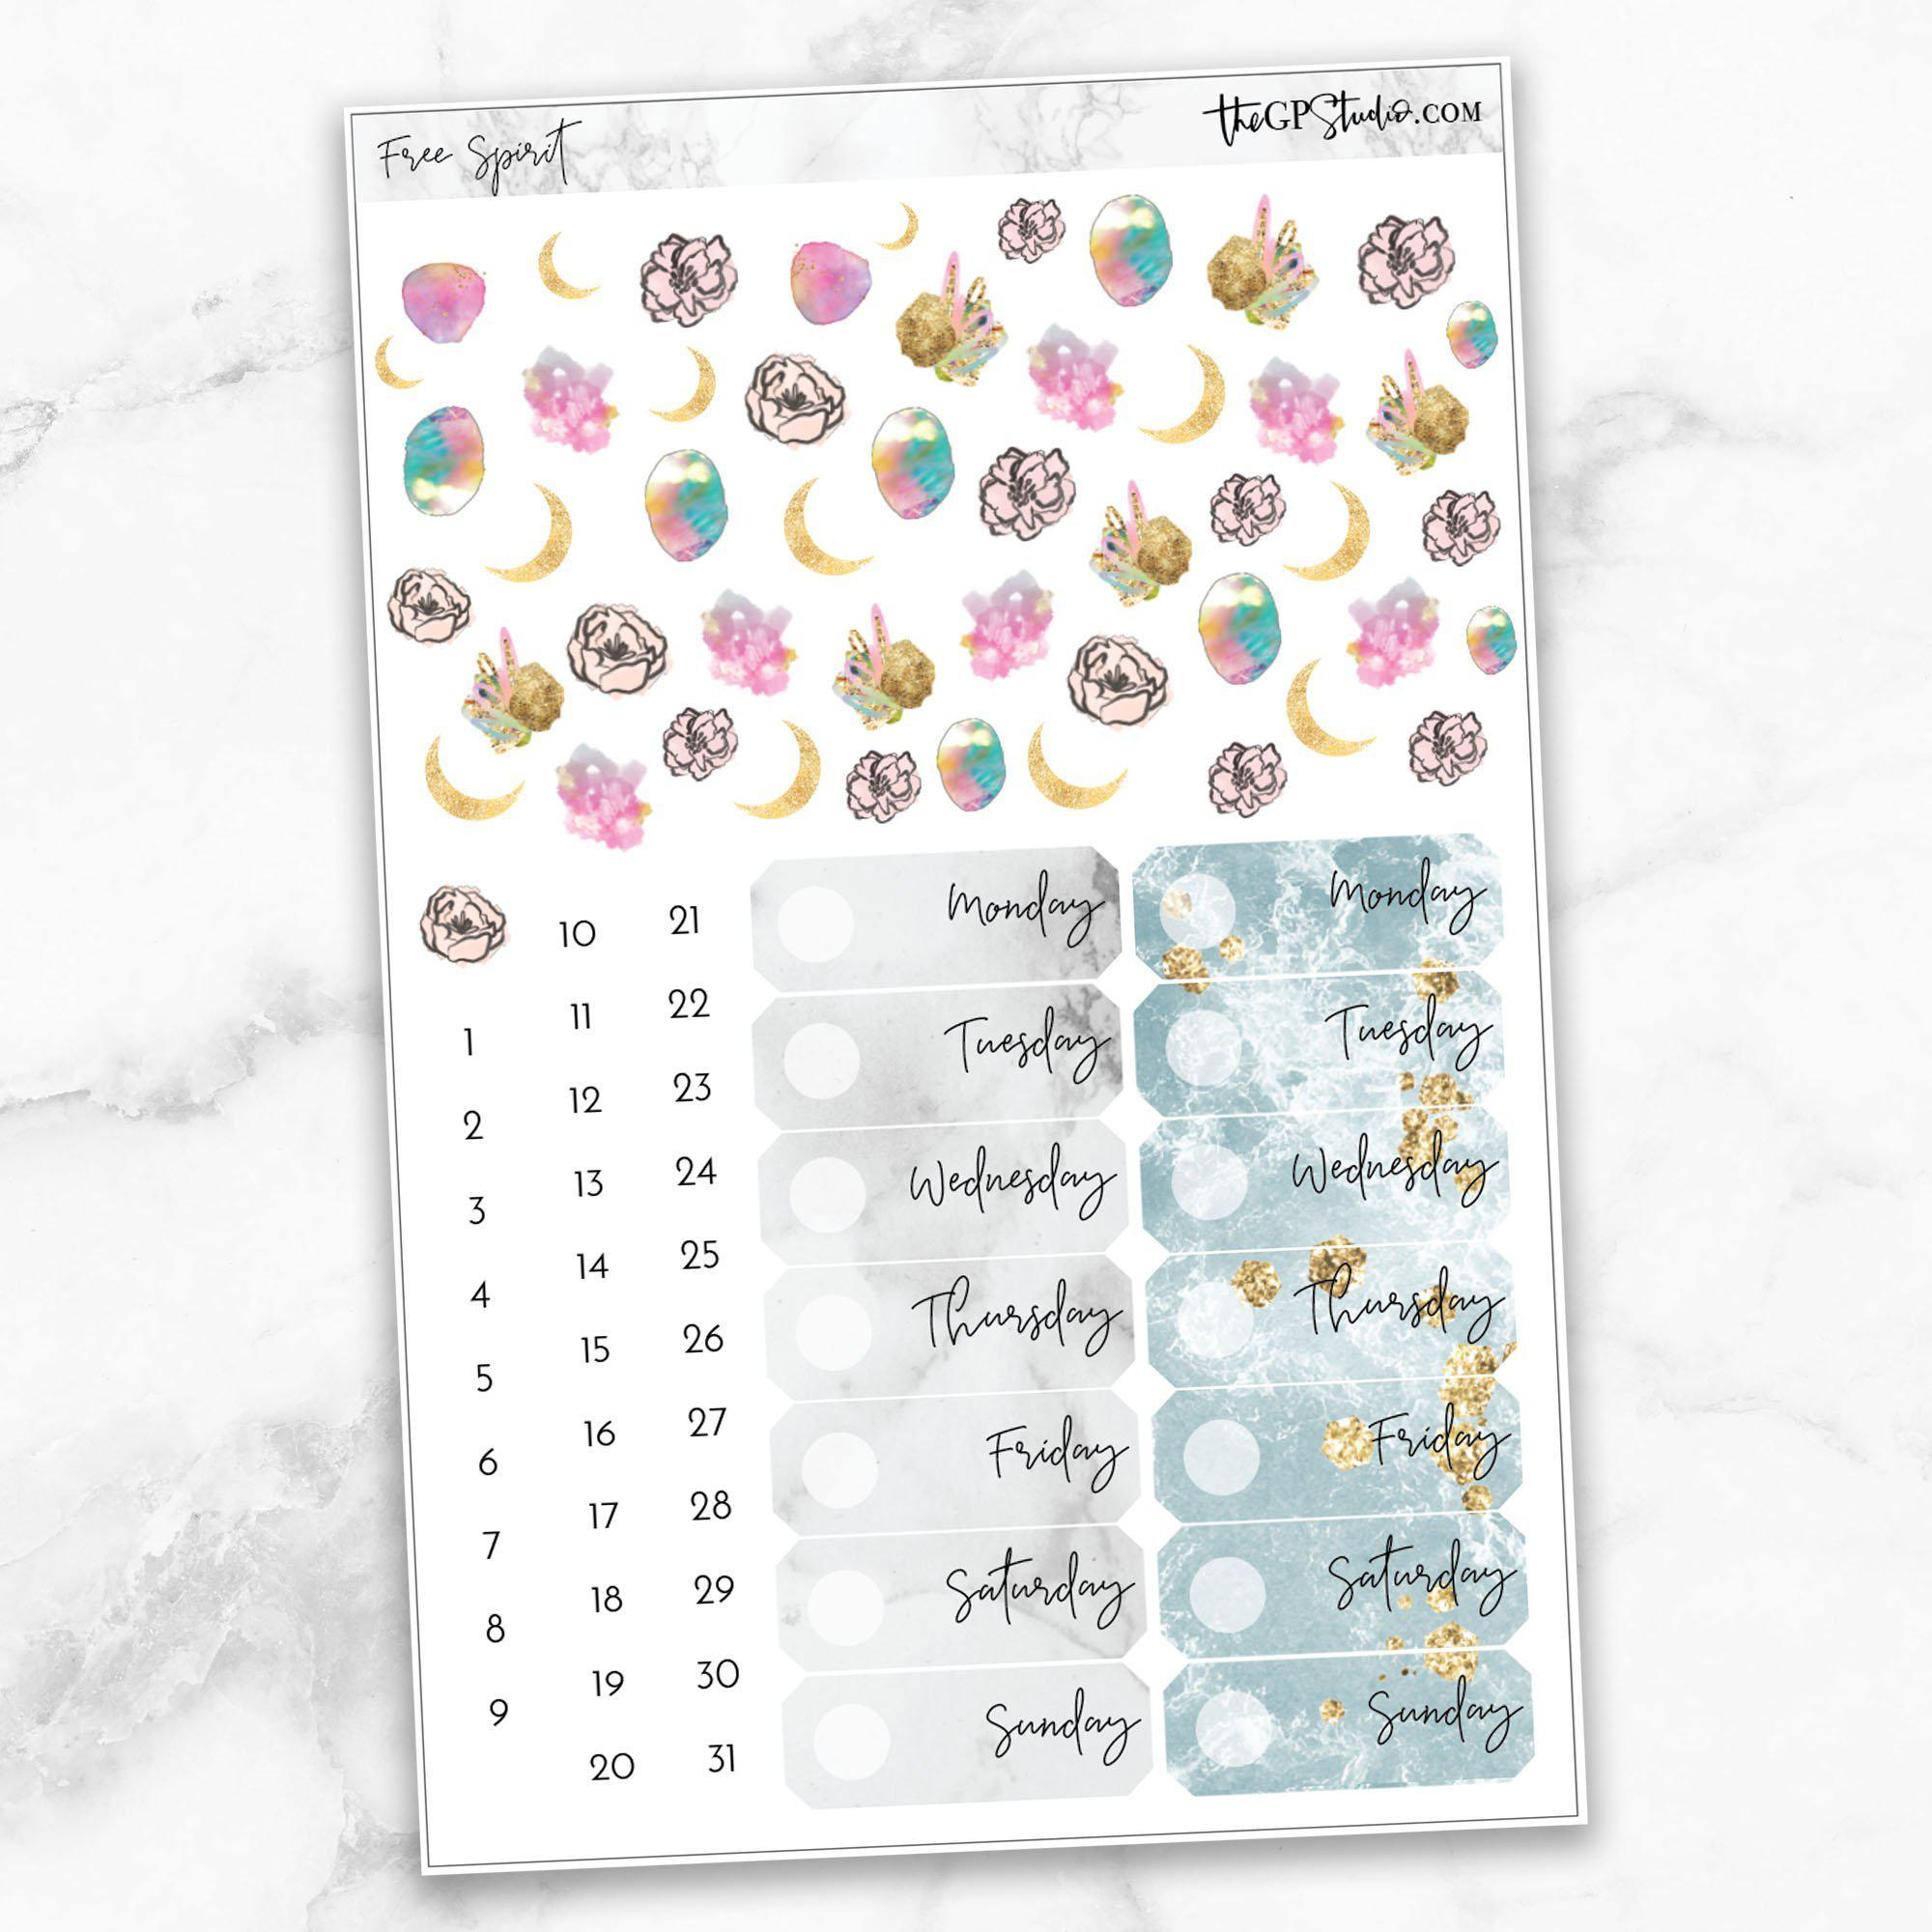 FREE SPIRIT Deco & Date Cover Stickers-The GP Studio